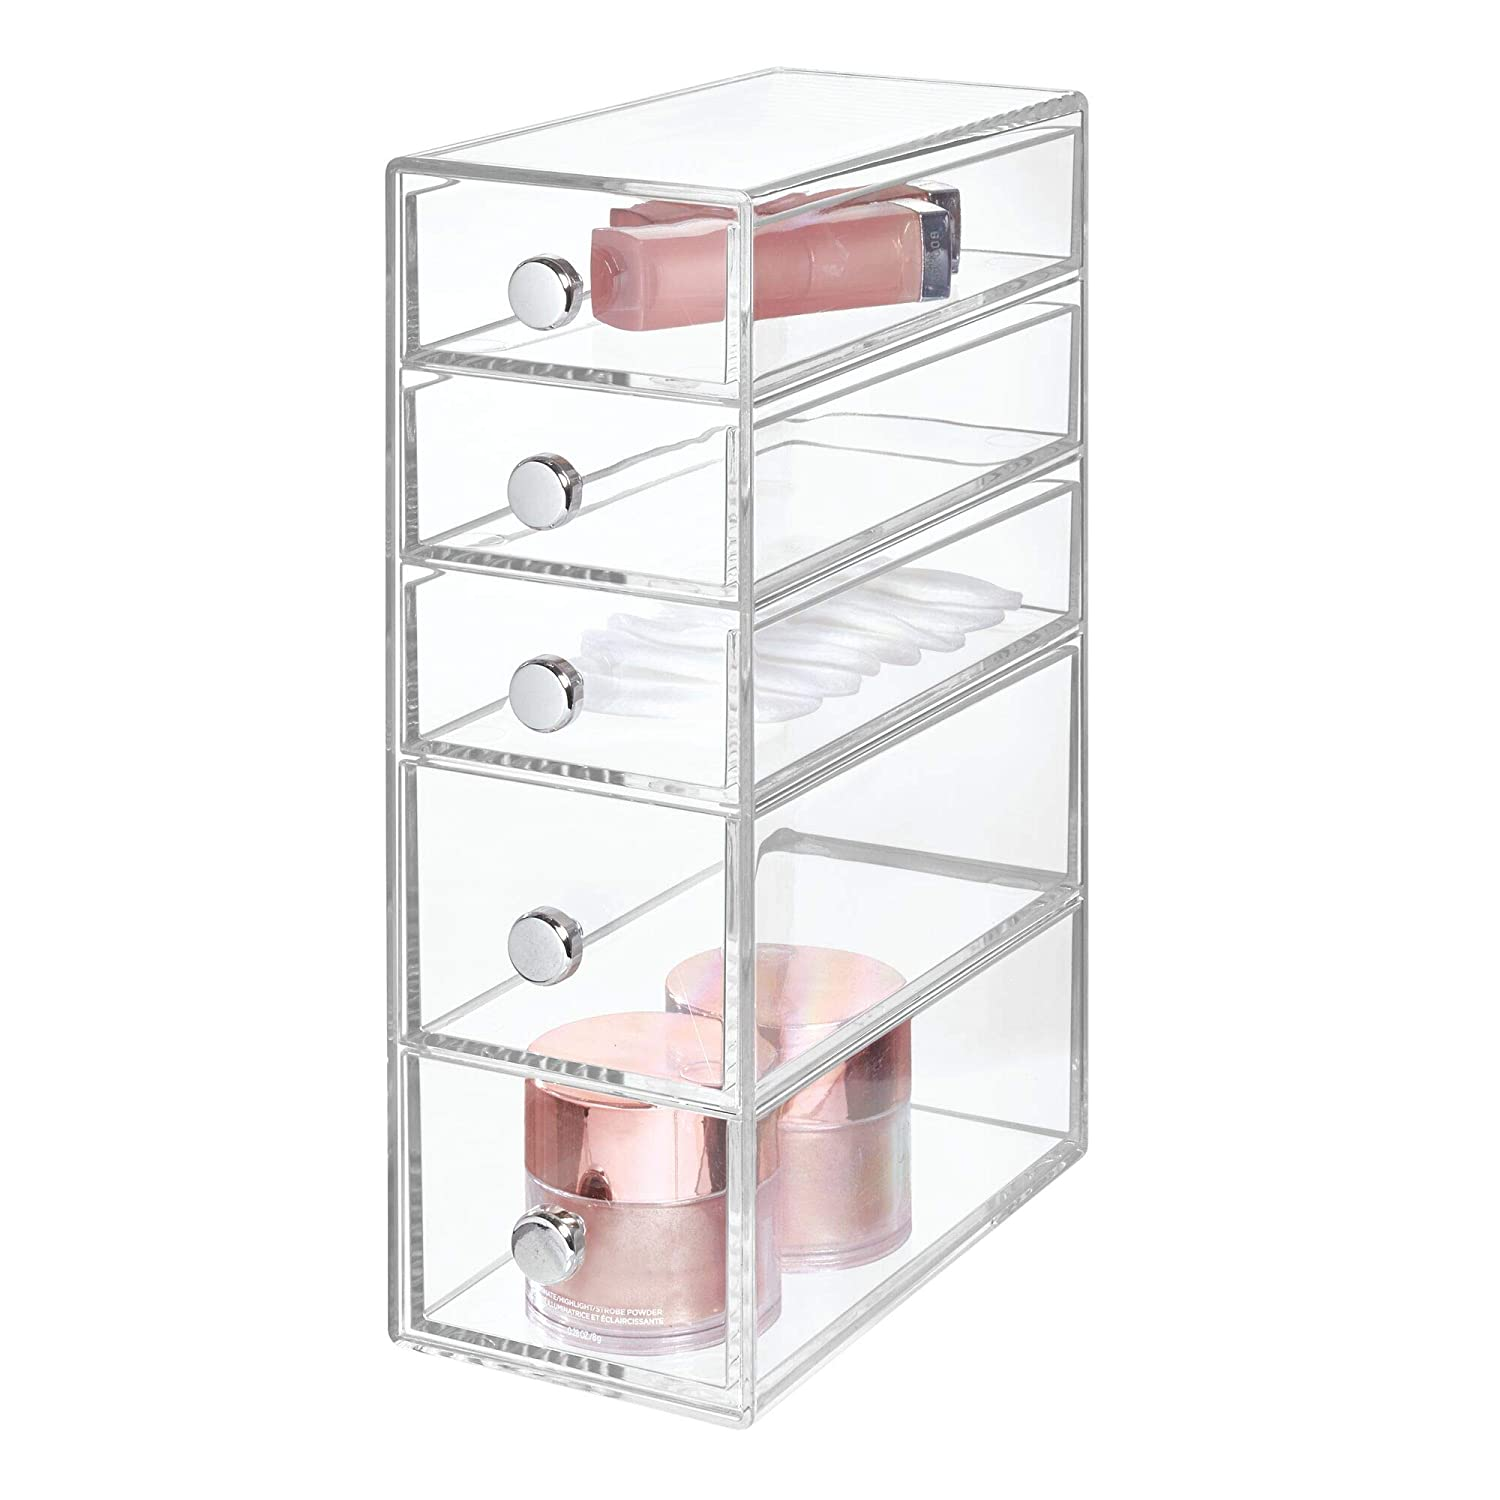 "iDesign Clarity Plastic Cosmetic 5-Drawer Organizer, Jewelry Countertop Organization for Vanity, Bathroom, Bedroom, Desk, Office, 3.5"" x 7"" x 10"", Clear"